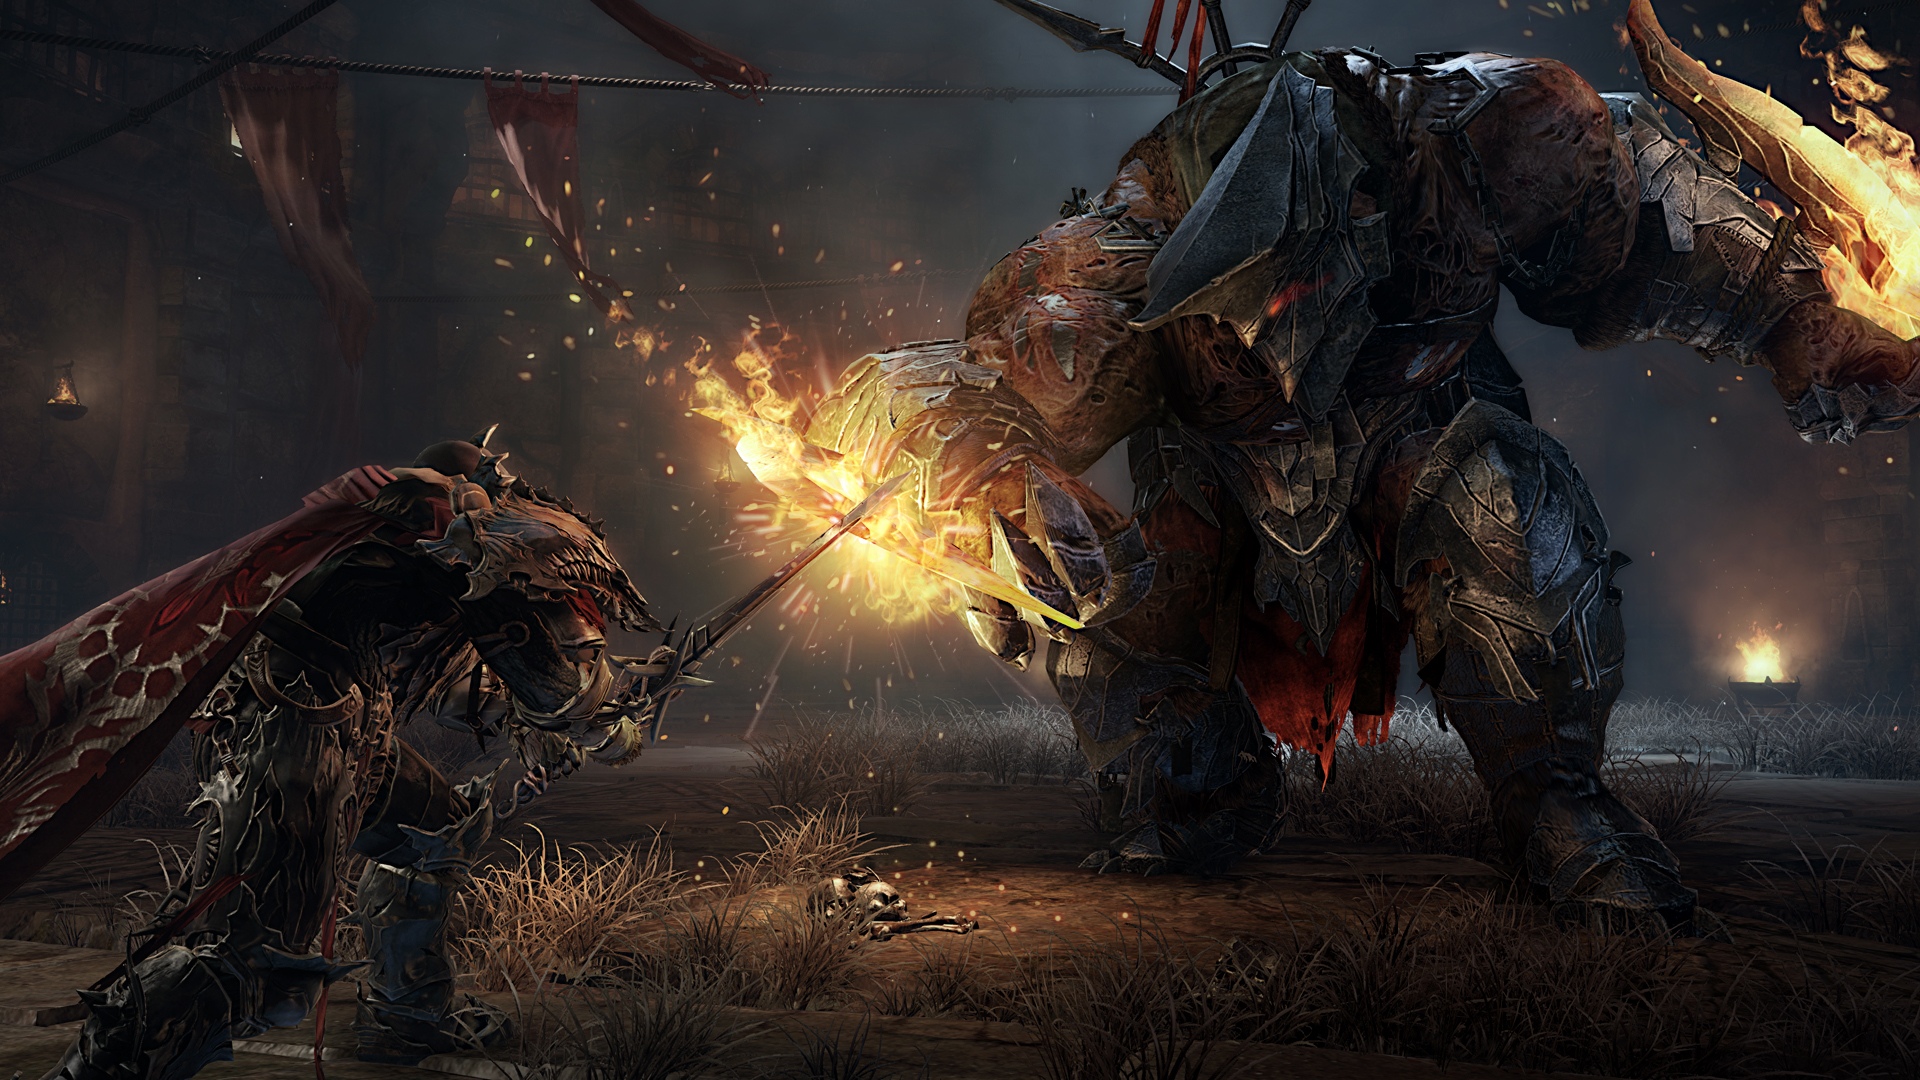 Lords of the Fallen is a European Dark Souls, and I don't know how to feel about it